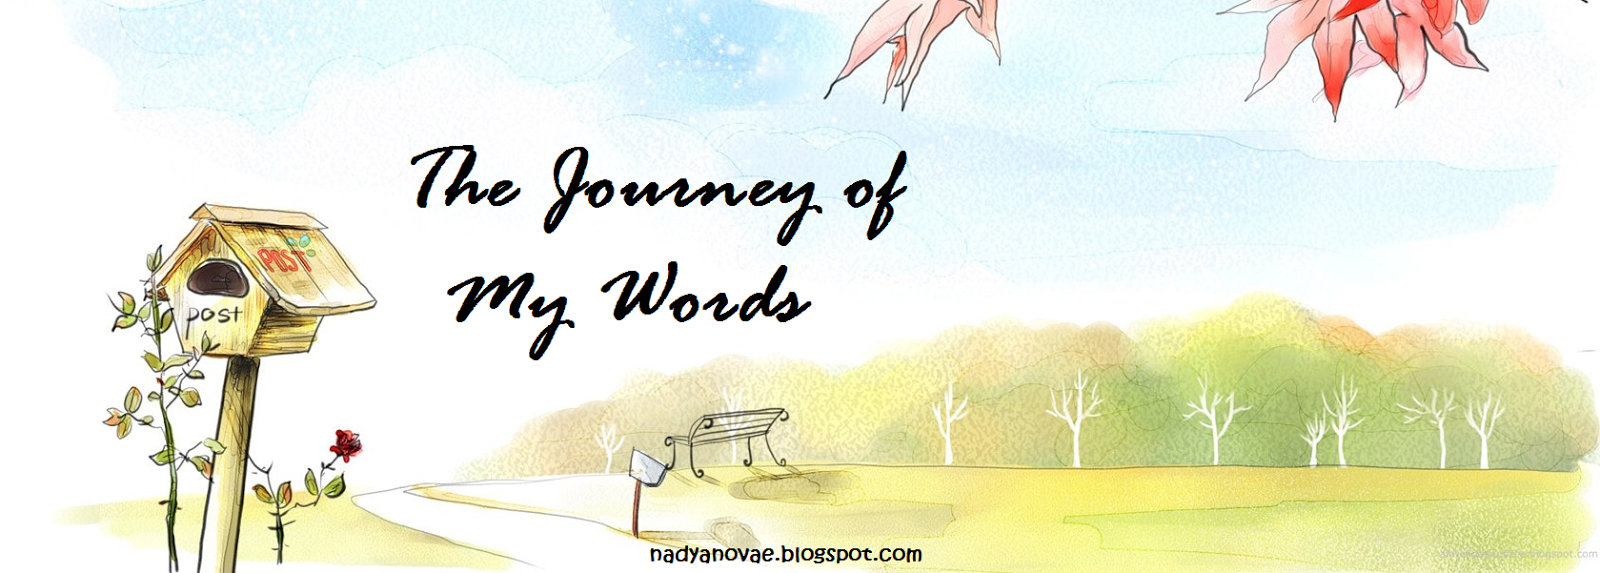 The Journey of My Words